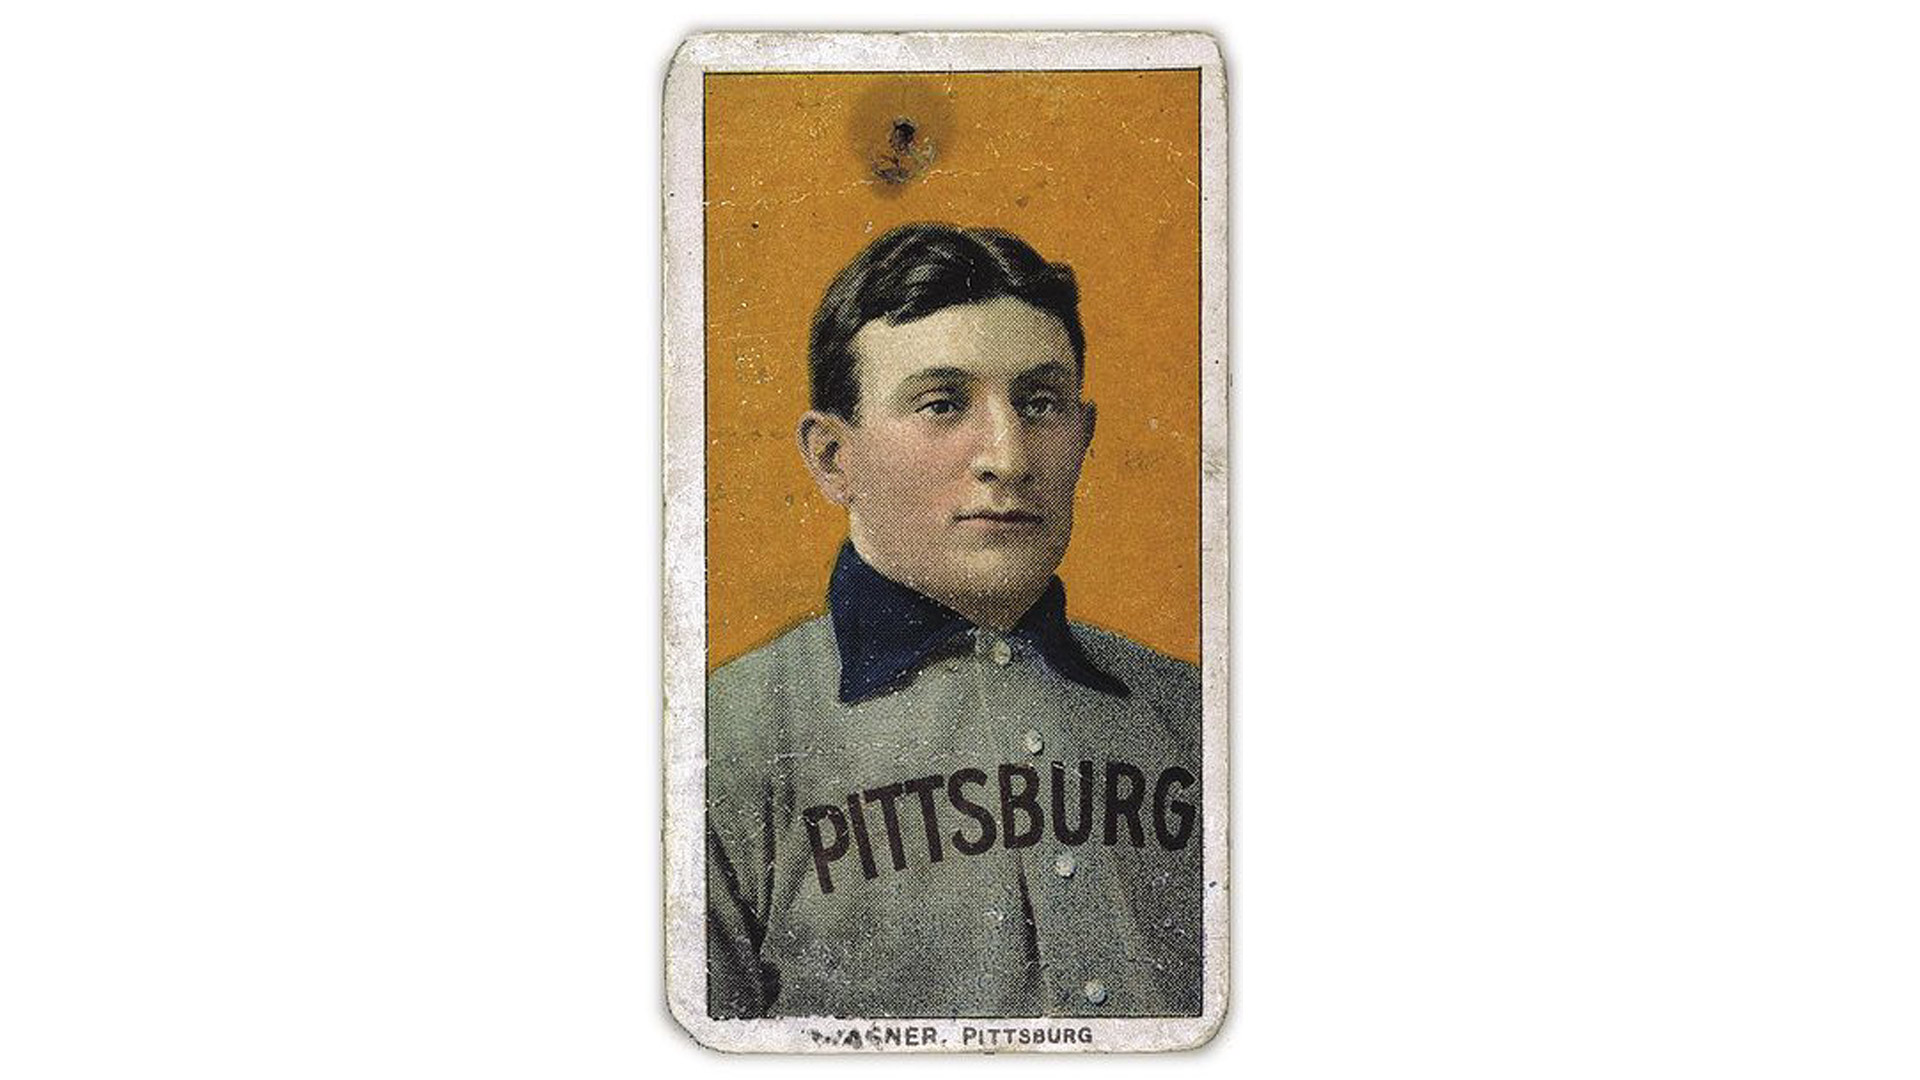 Honus Wagner card sells for $1.32 million, a relative steal